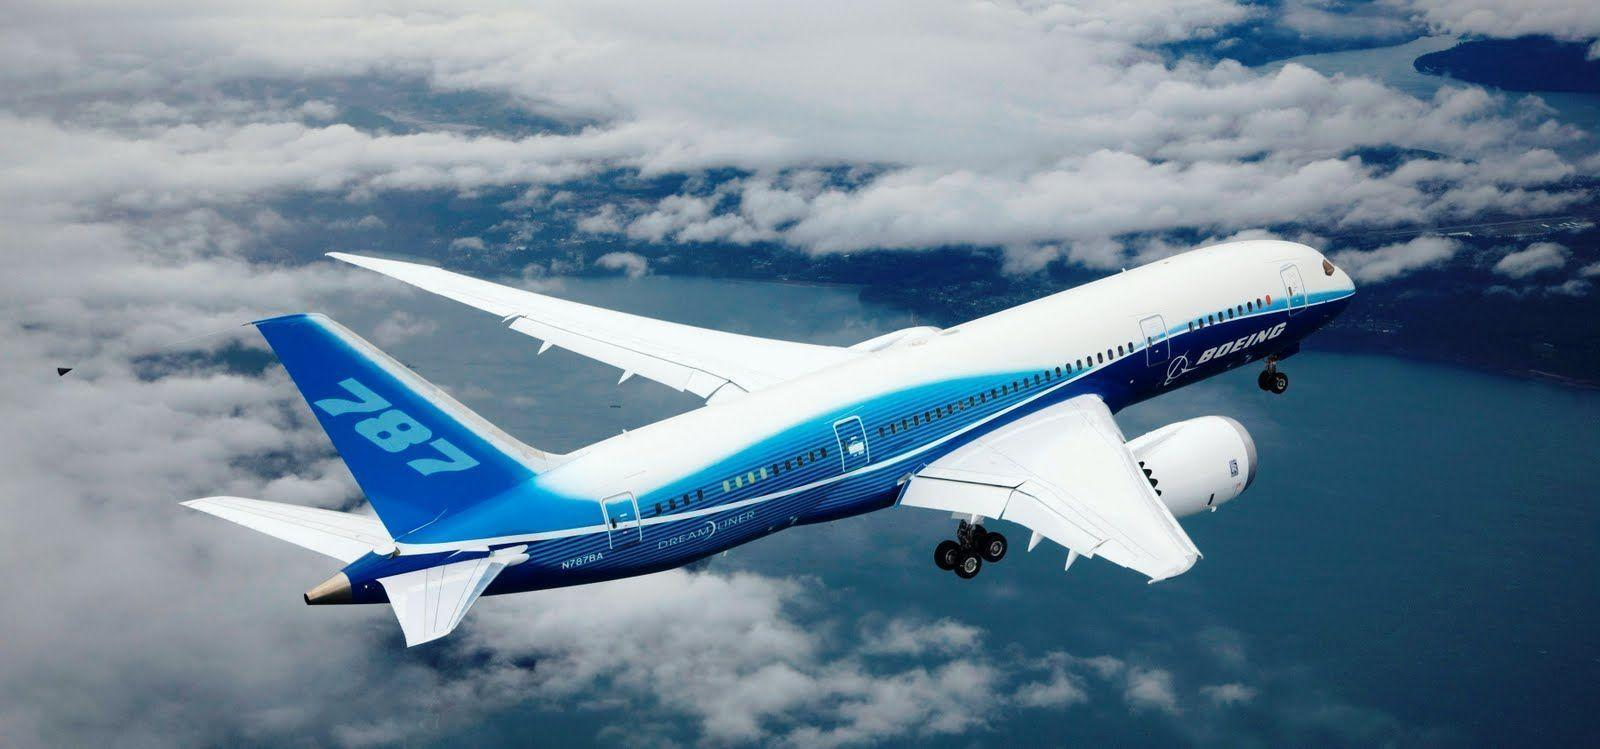 dreamliner wallpaper - photo #9